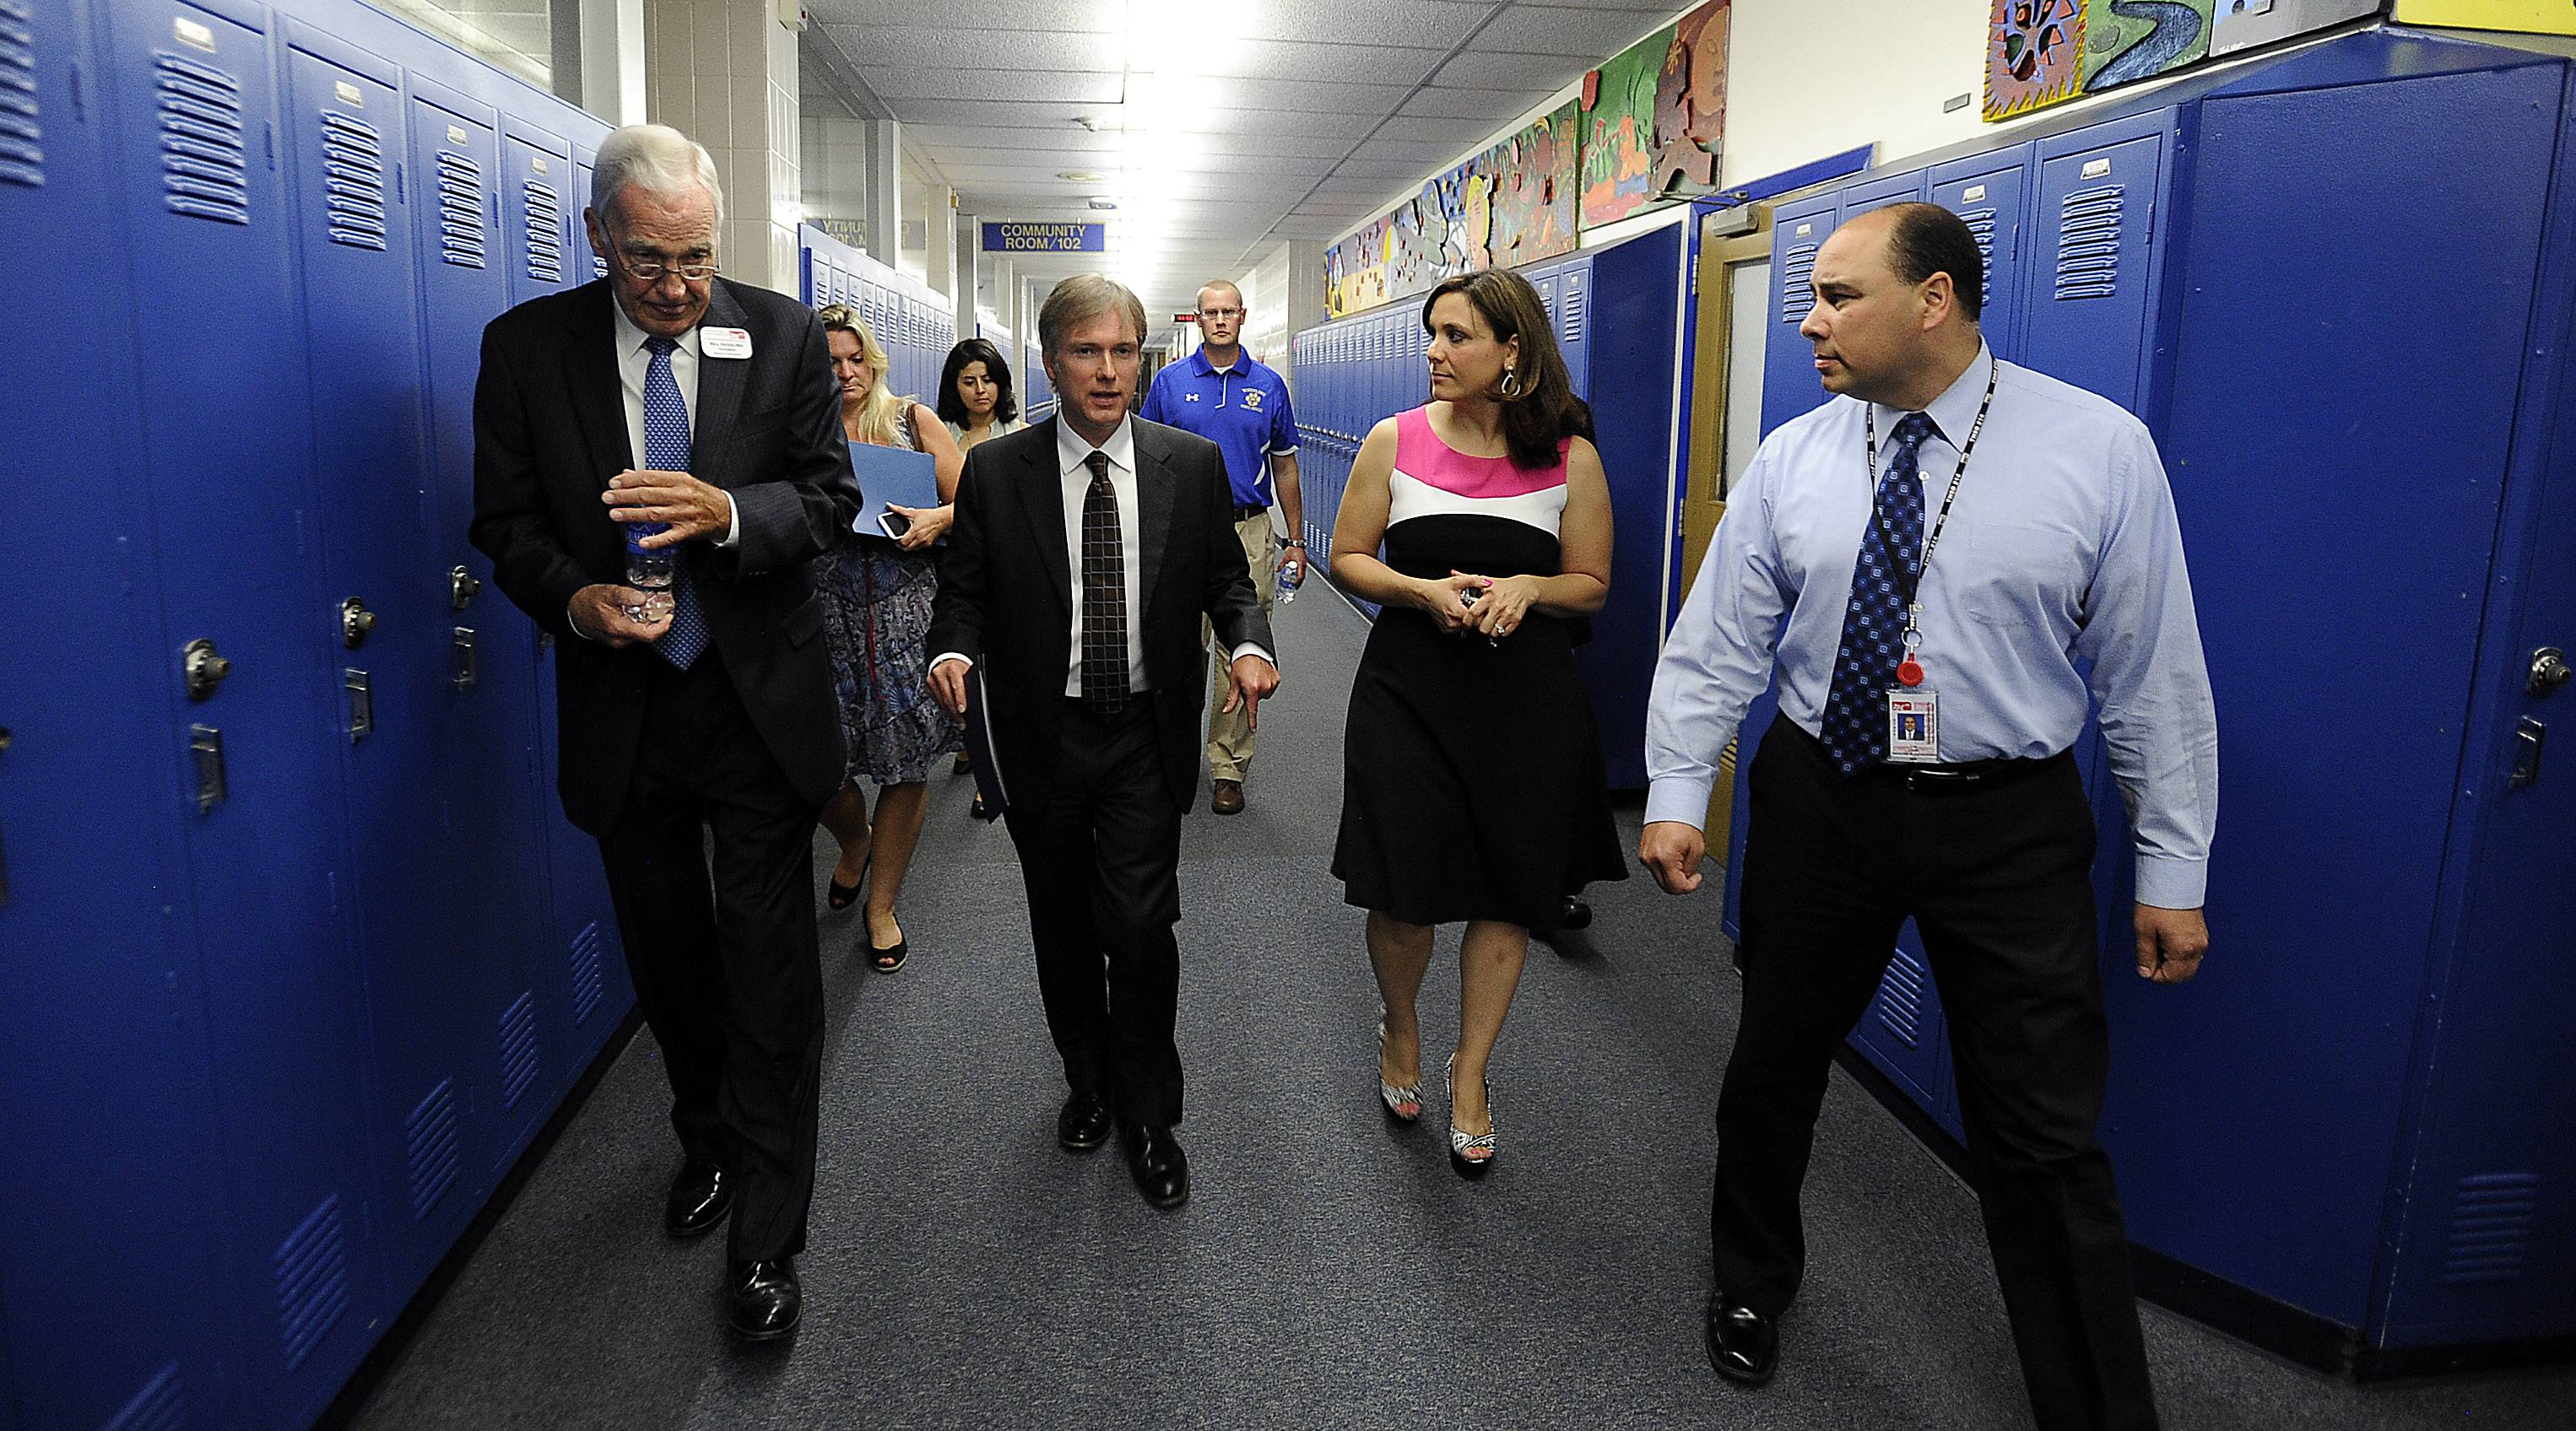 Visiting MP Henry Smith, center, walks the hallway with Bill Dussling, president of the District 214 school board, left, Principal Angela Sisi and Lazaro Lopez, associate superintendent for teaching and learning.